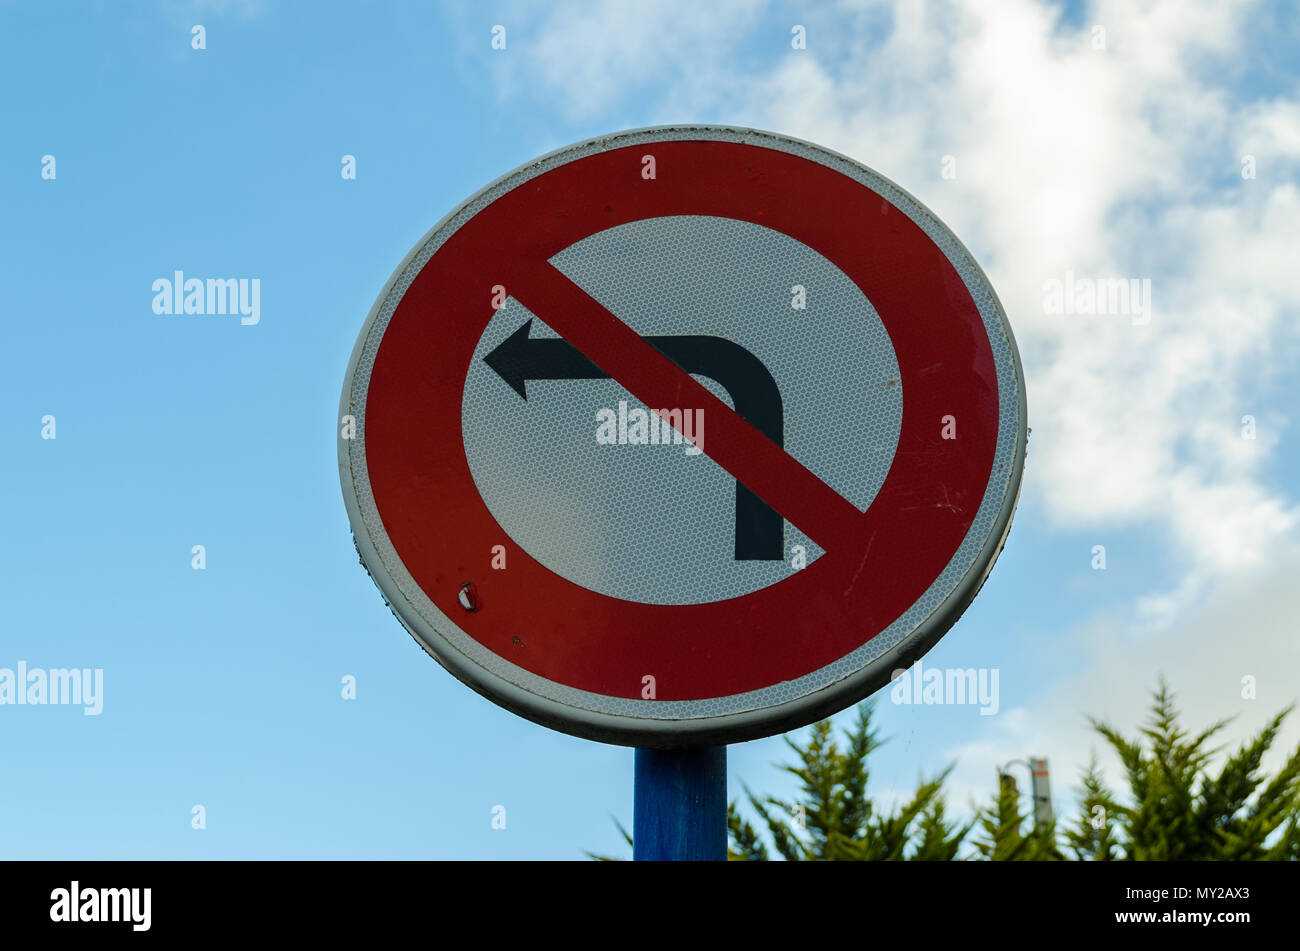 A circular road sign which prohibits vehicles from making left turns. - Stock Image